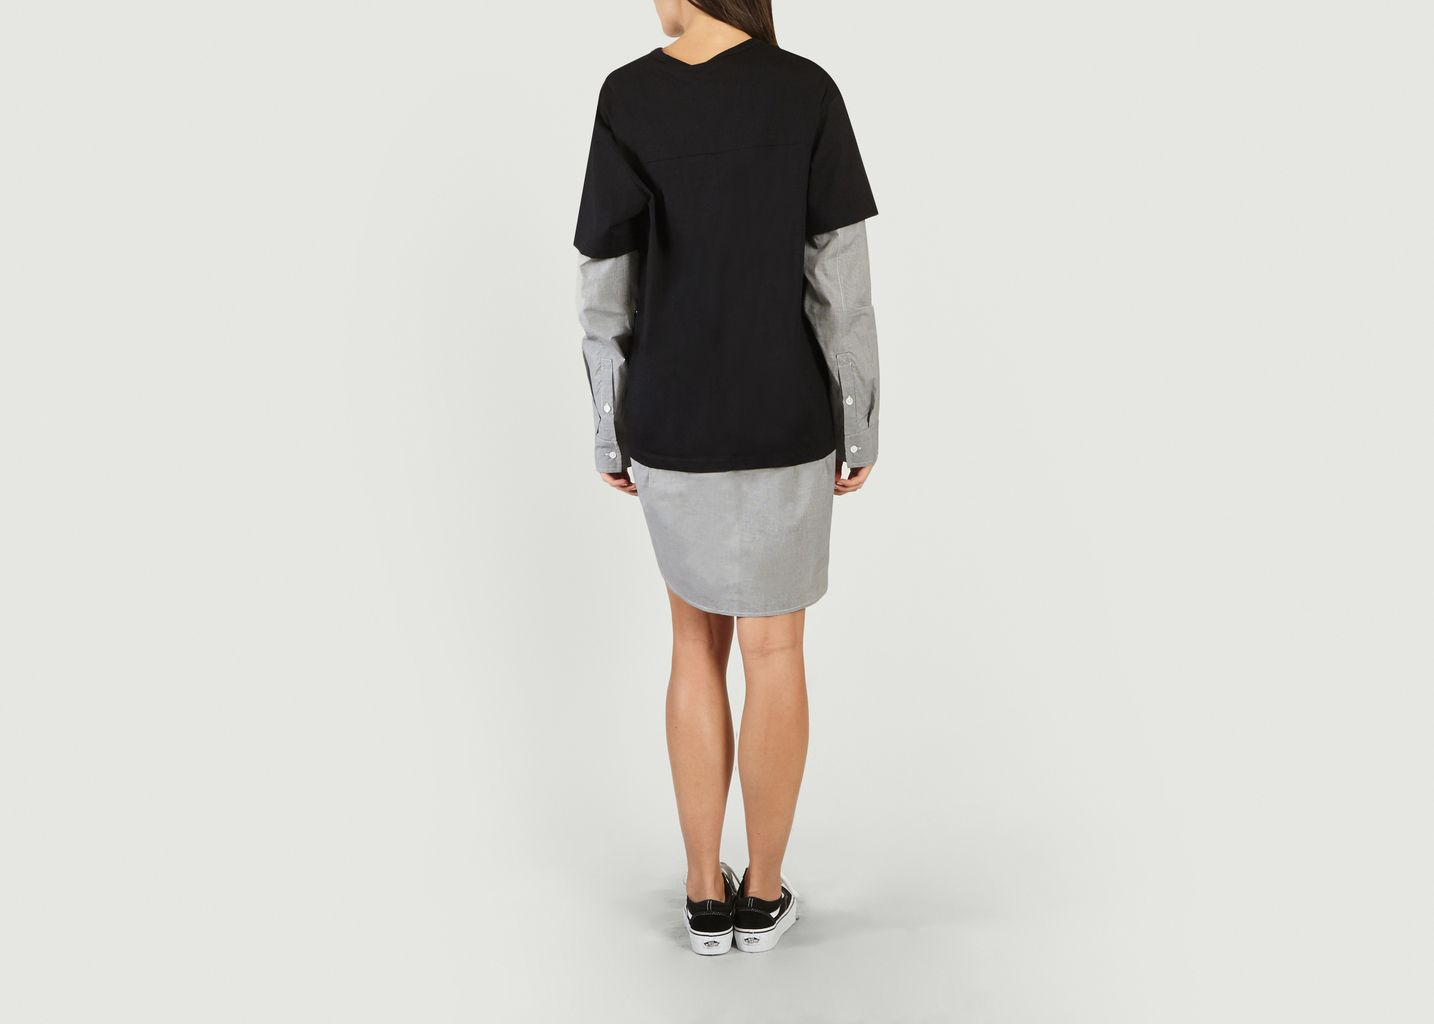 Sale T Shirt Shirt Dress Black T By Alexander Wang At 50 Lexception